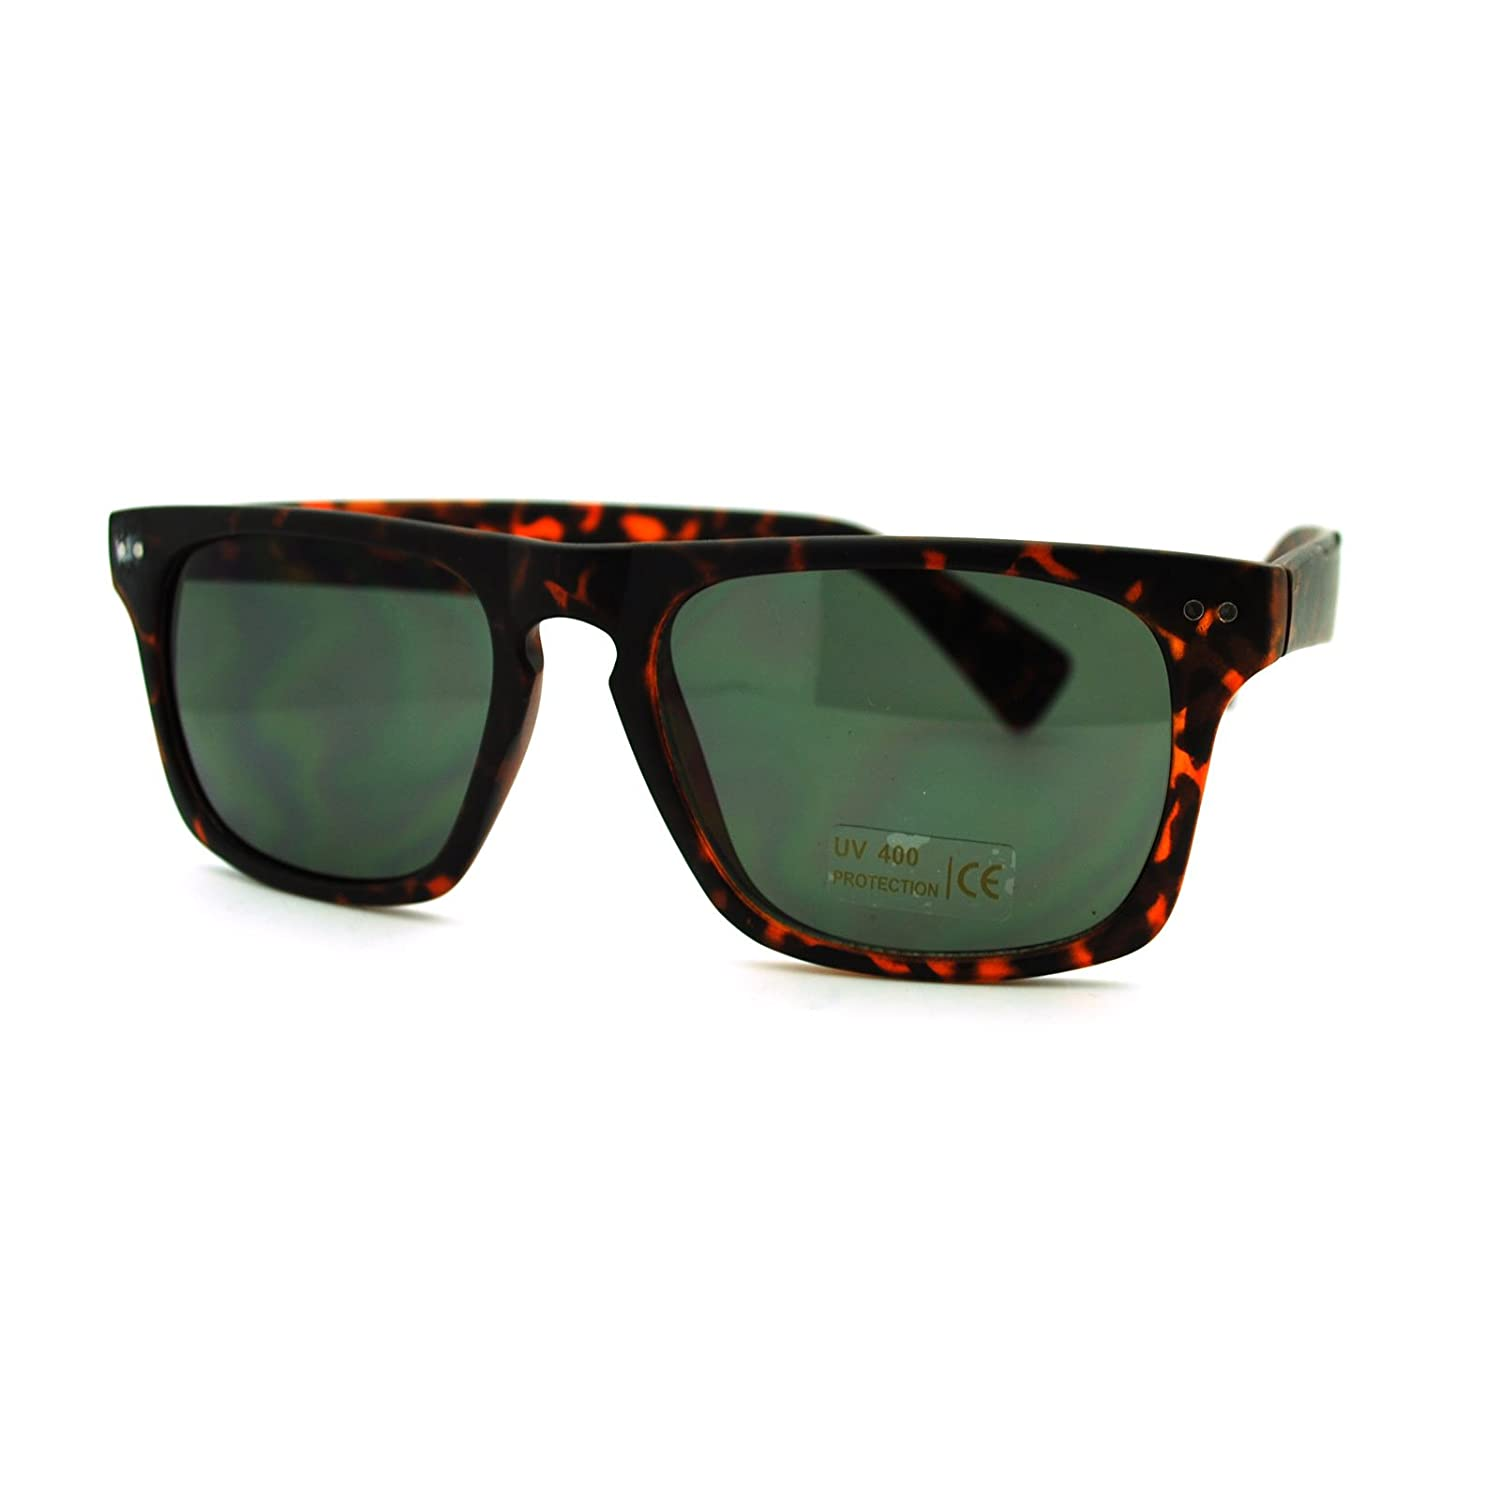 Unisex Designer Fashion Short Square Sunglasses